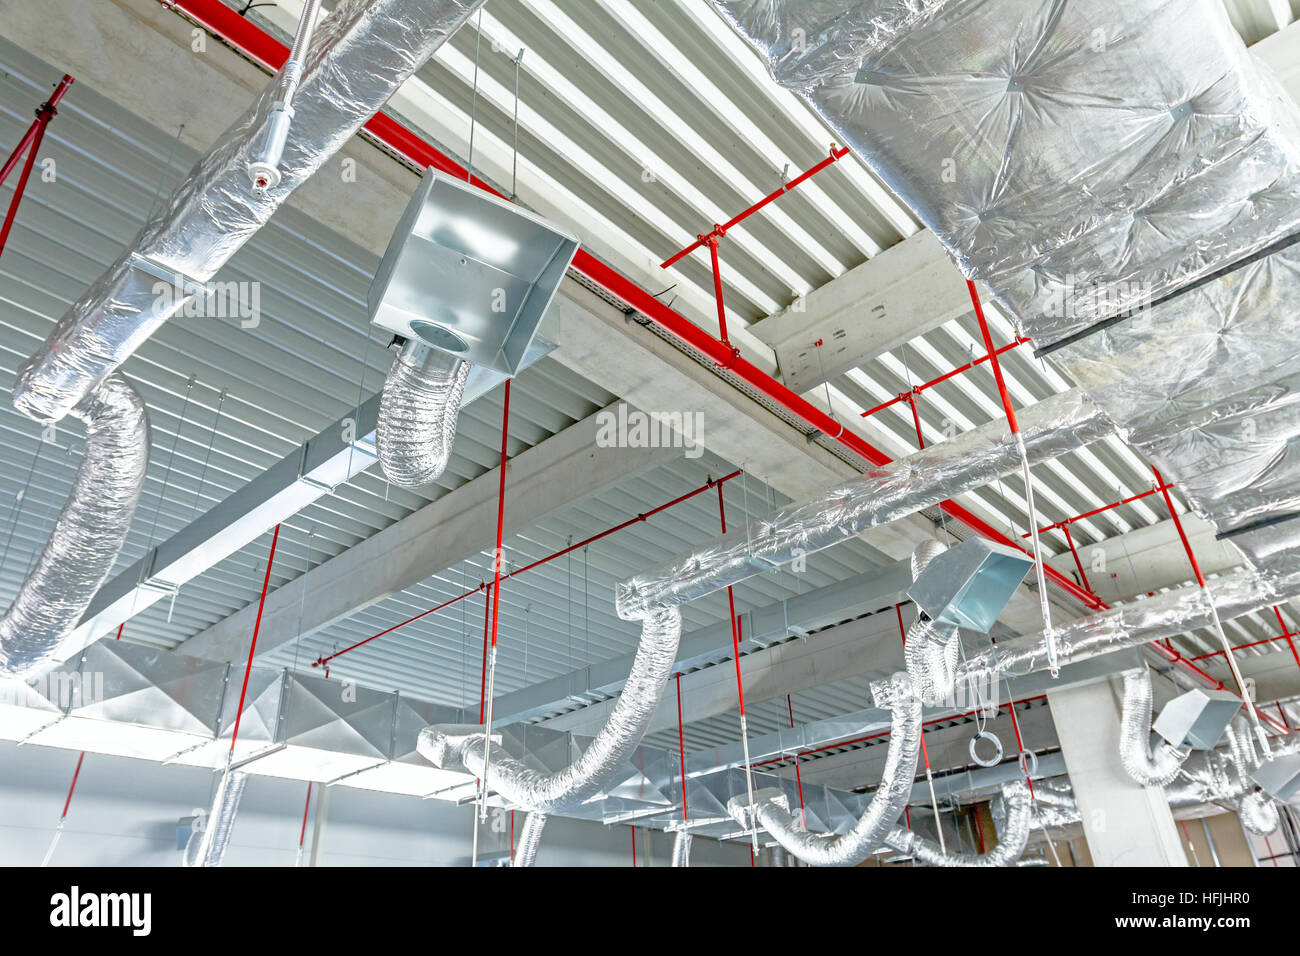 Ventilation Pipes In Silver Insulation Material And Fire